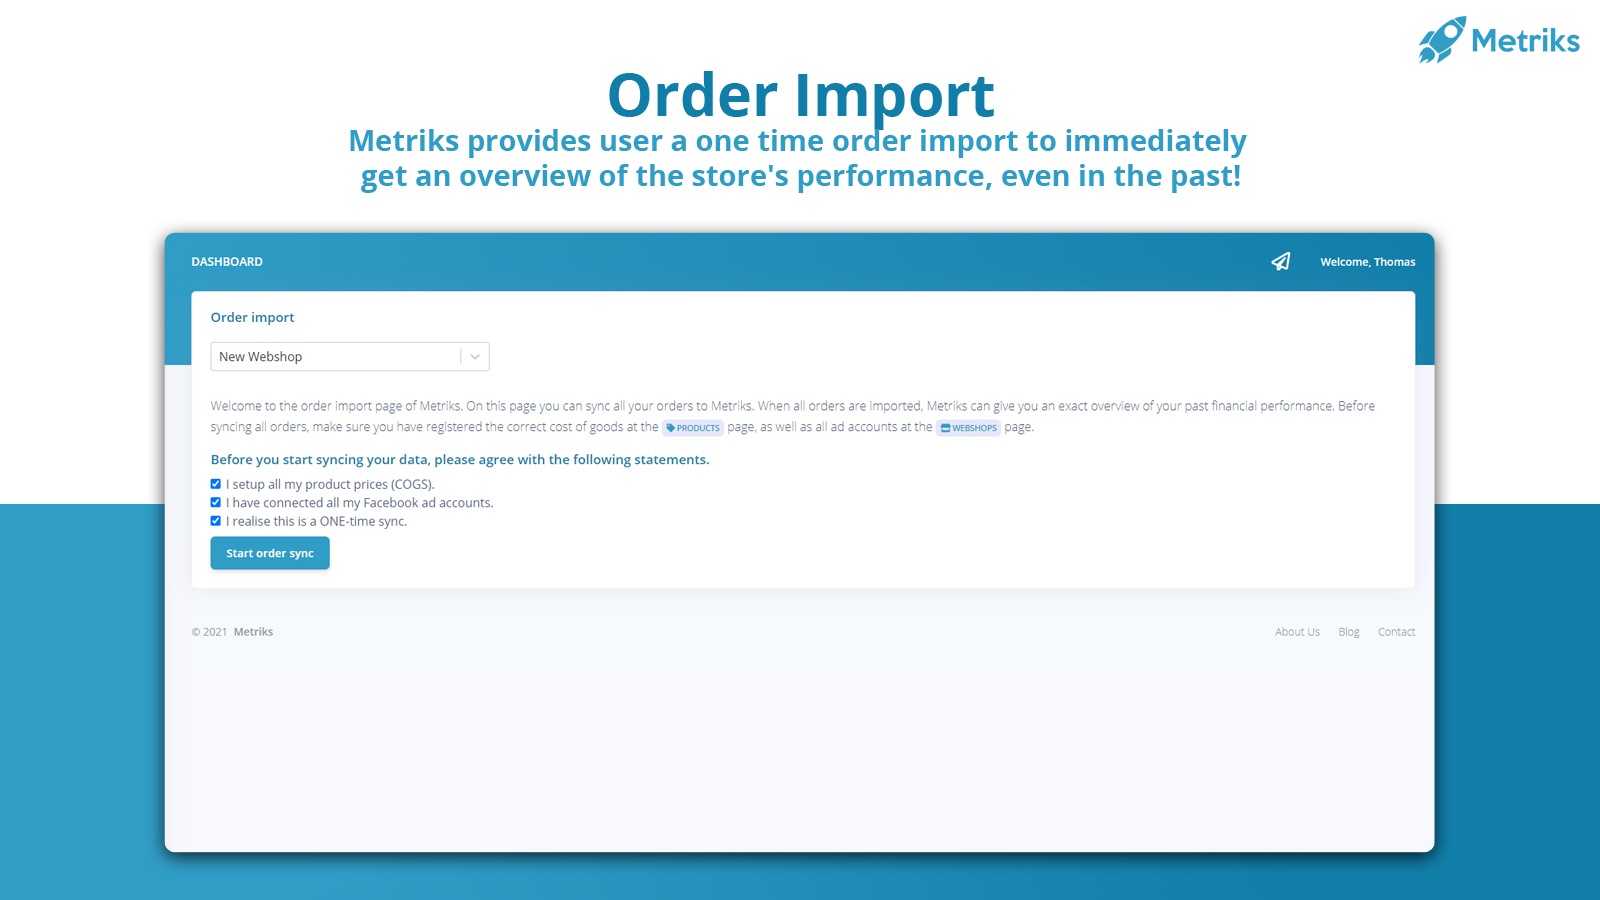 Use our order import to create a complete overview of your store